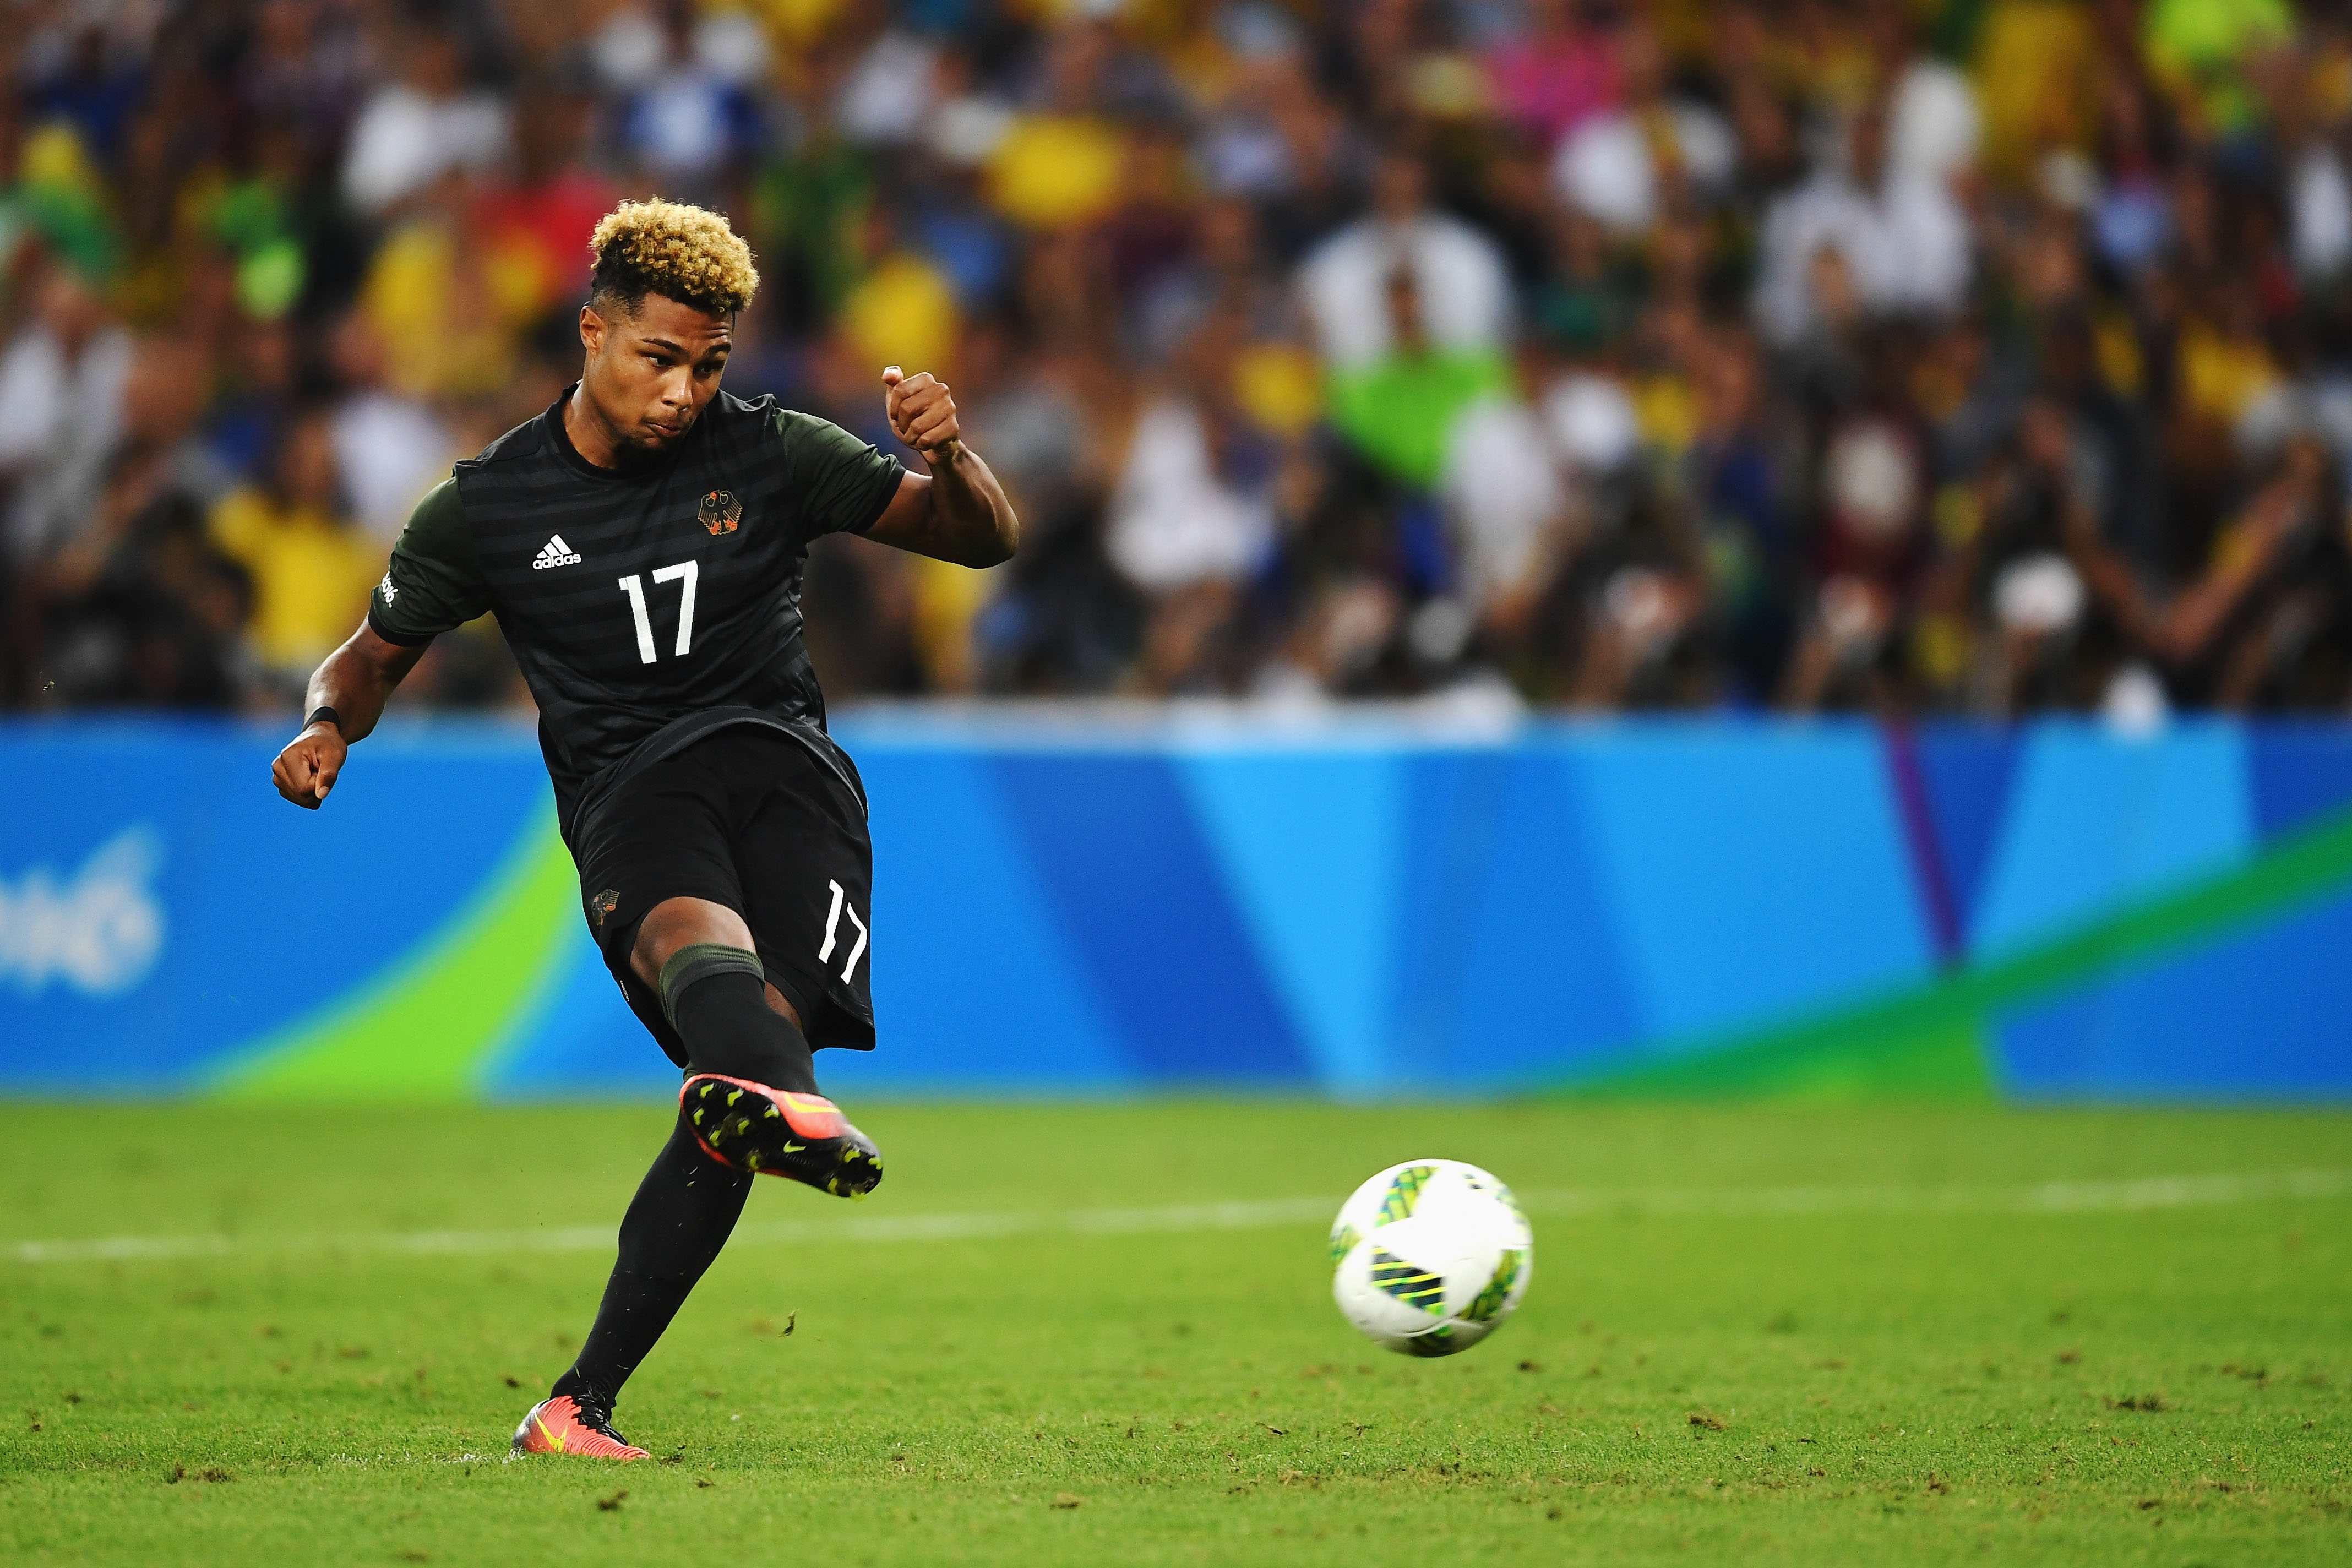 Arsenal star Serge Gnabry named as Germany's best player at Rio 2016 Olympics